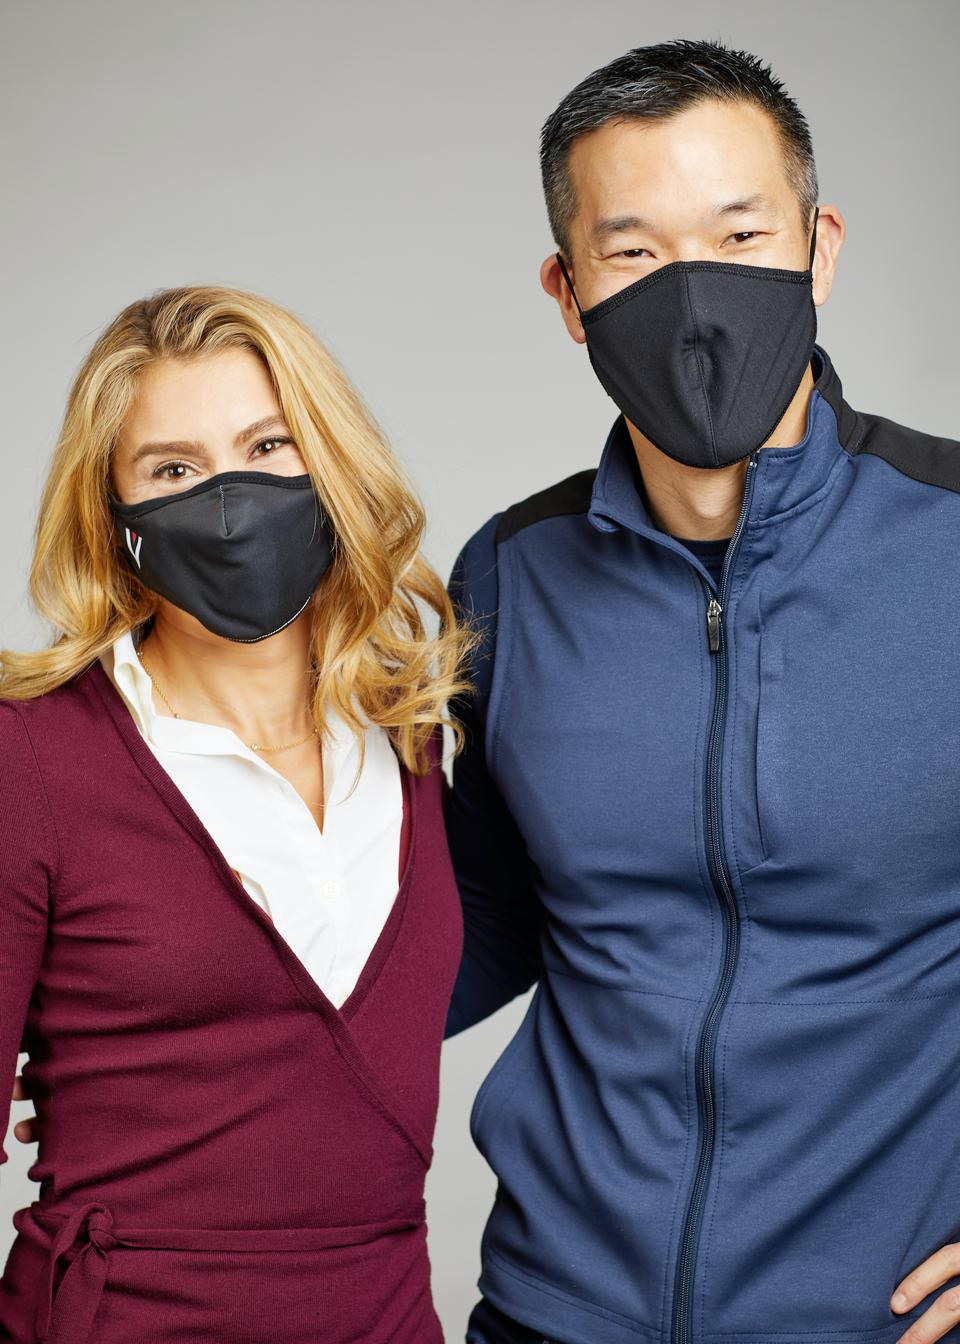 Jennifer Fleiss and Larry Cheng of Volition capital wearing masks and facing the camera